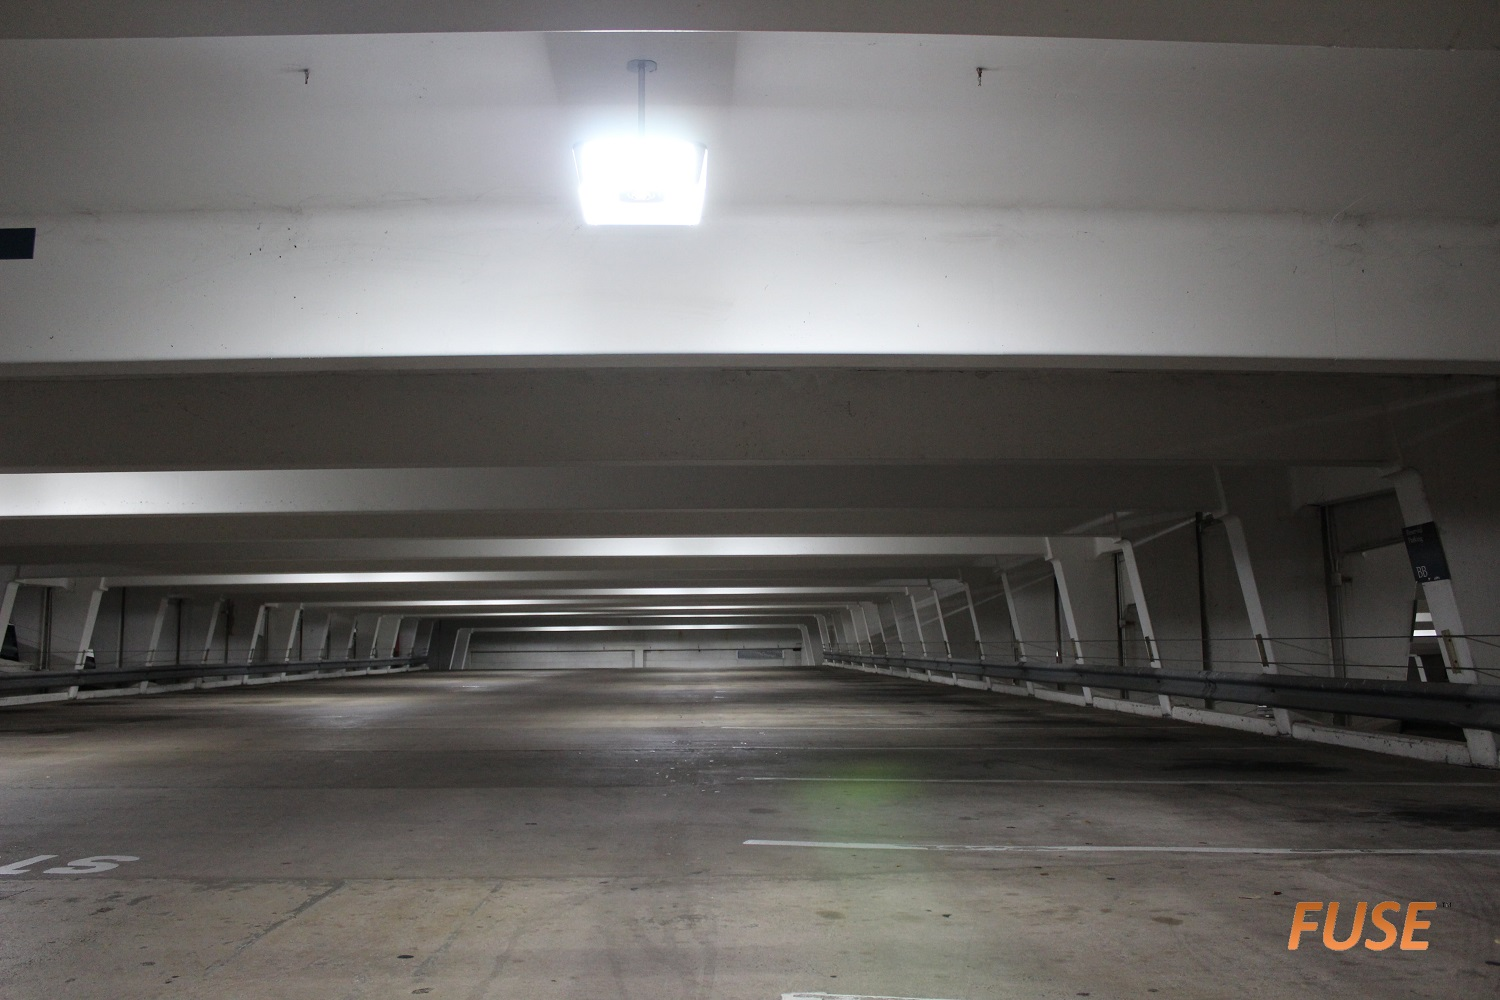 FUSE Lighting - Parking Garage and Parking Lot LED Lighting in Houston, Texas